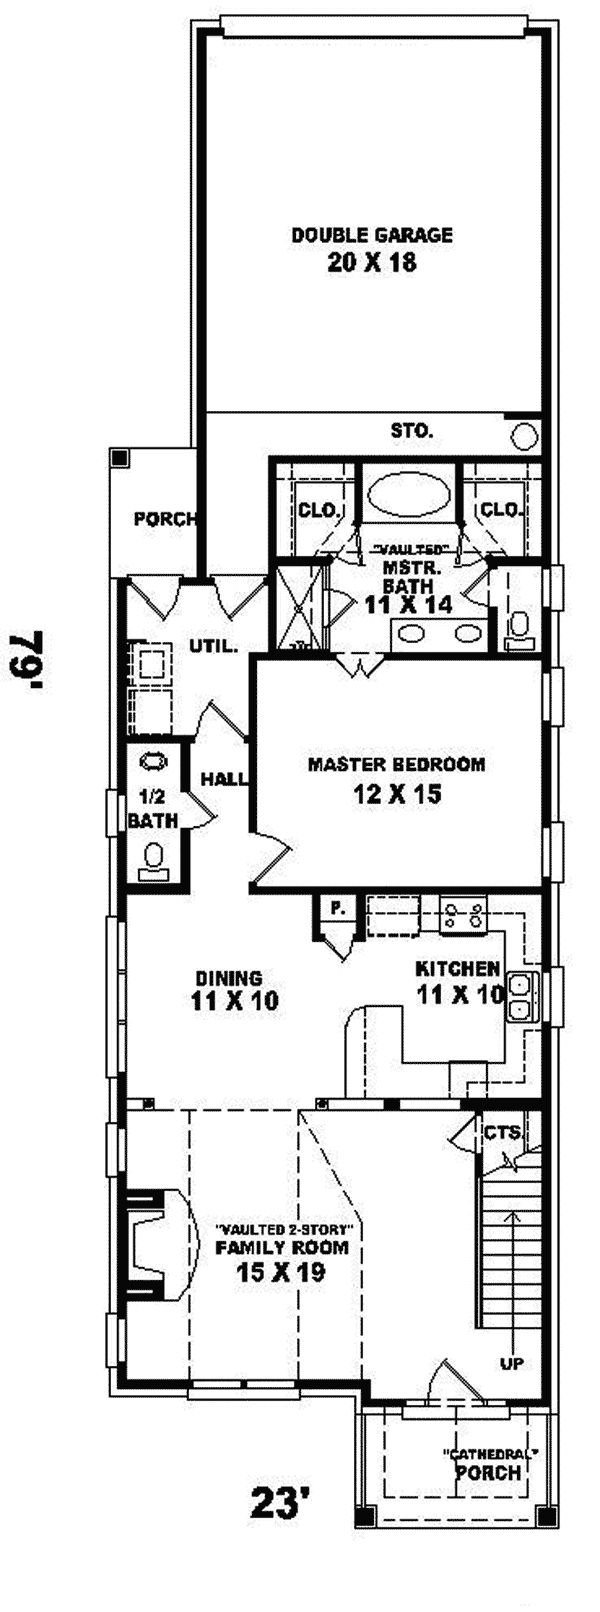 Best 25 narrow house plans ideas on pinterest narrow for 3 story house plans narrow lot